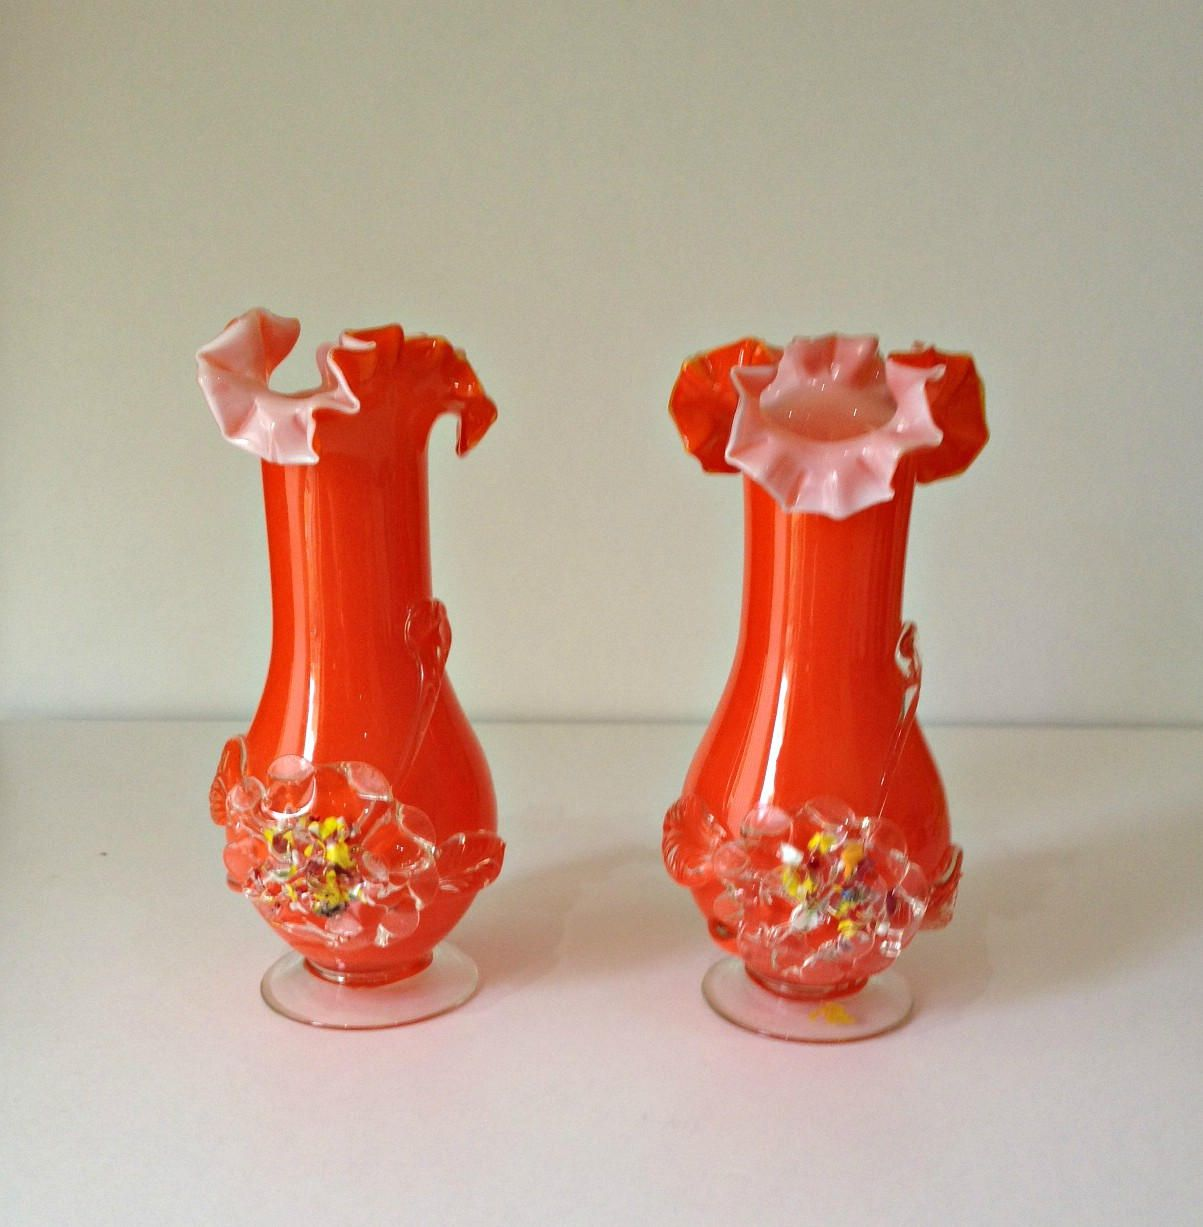 Vintage 1950s vases pair of orange italian glass vases vintage 1950s vases pair of orange italian glass vases decorative vases hand blown reviewsmspy